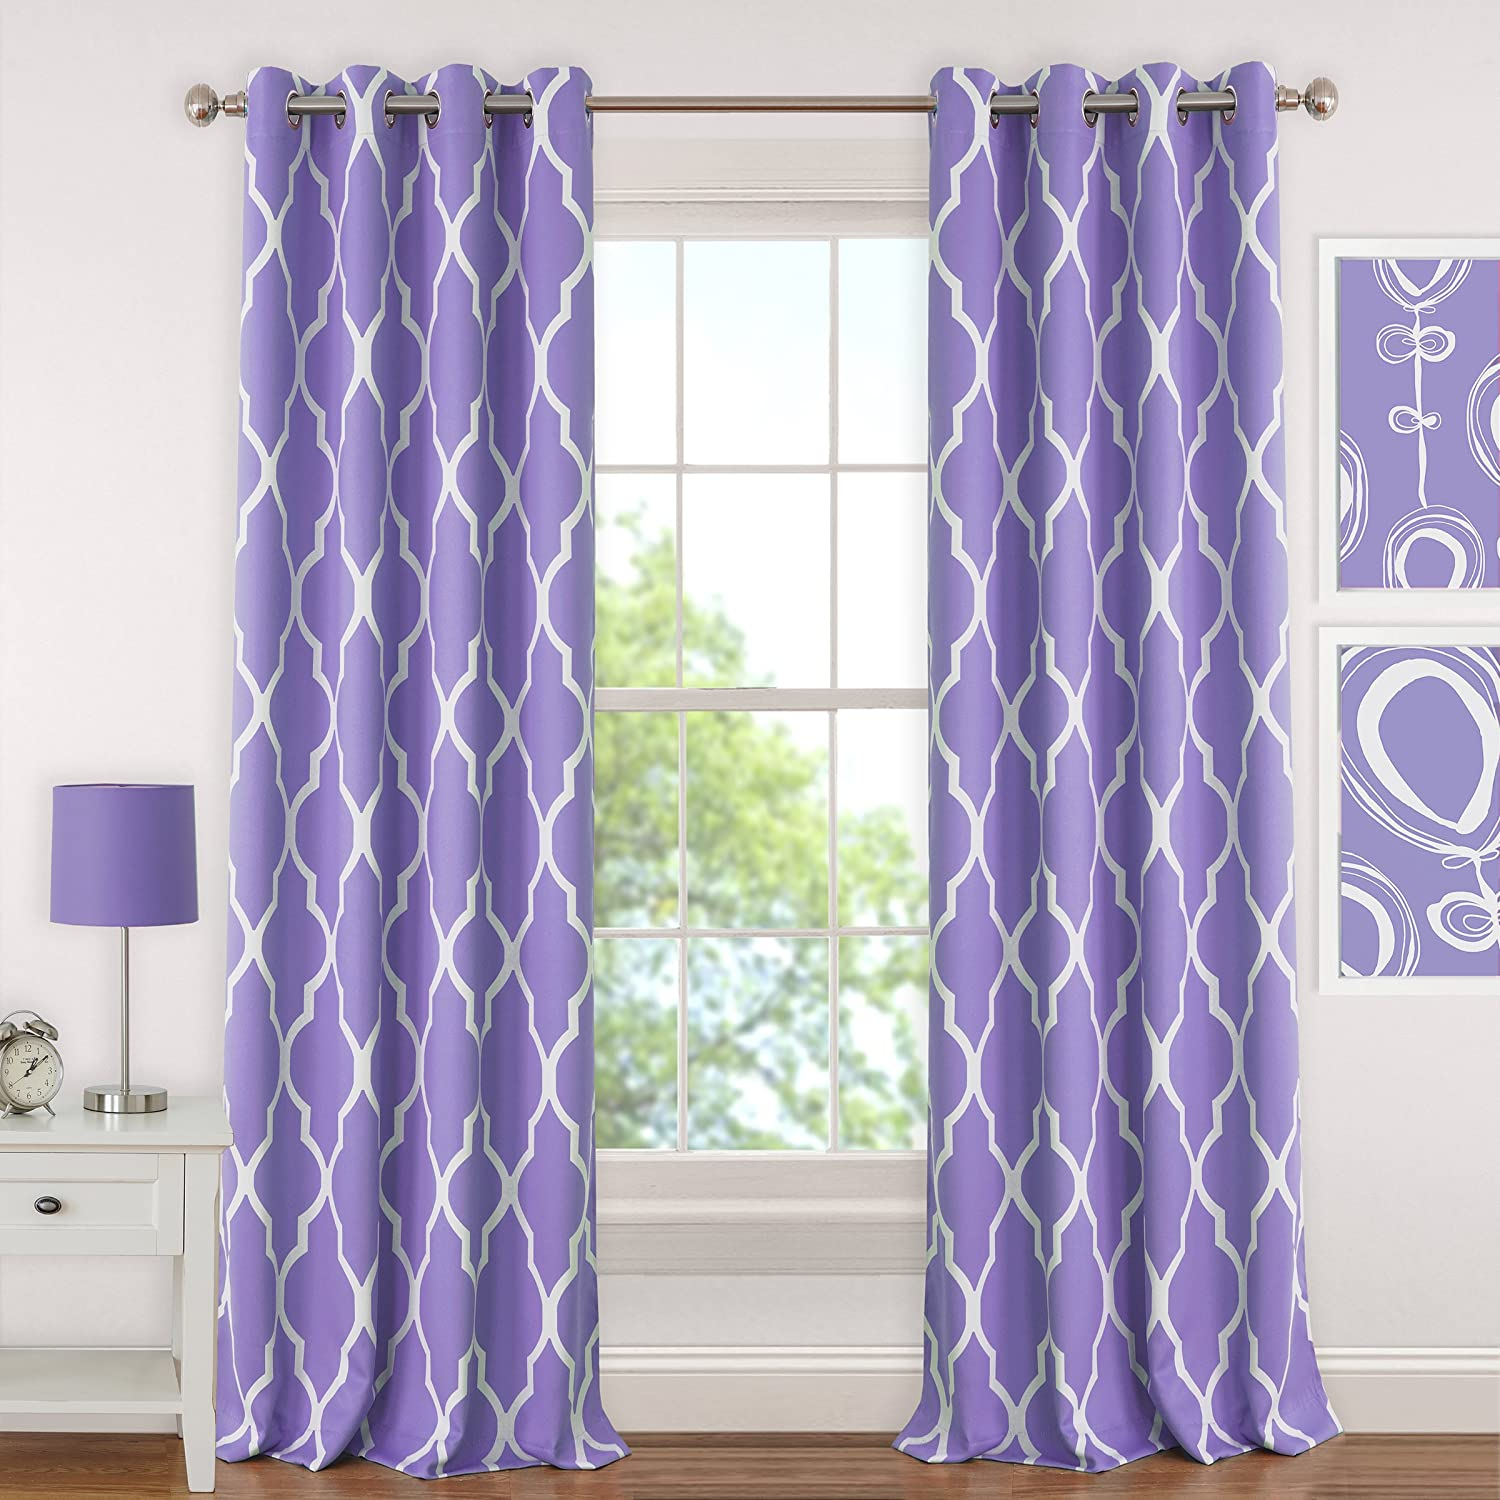 Juvenile Teen or Tween Blackout Room Darkening Grommet Window Curtain Drape Panel Purple